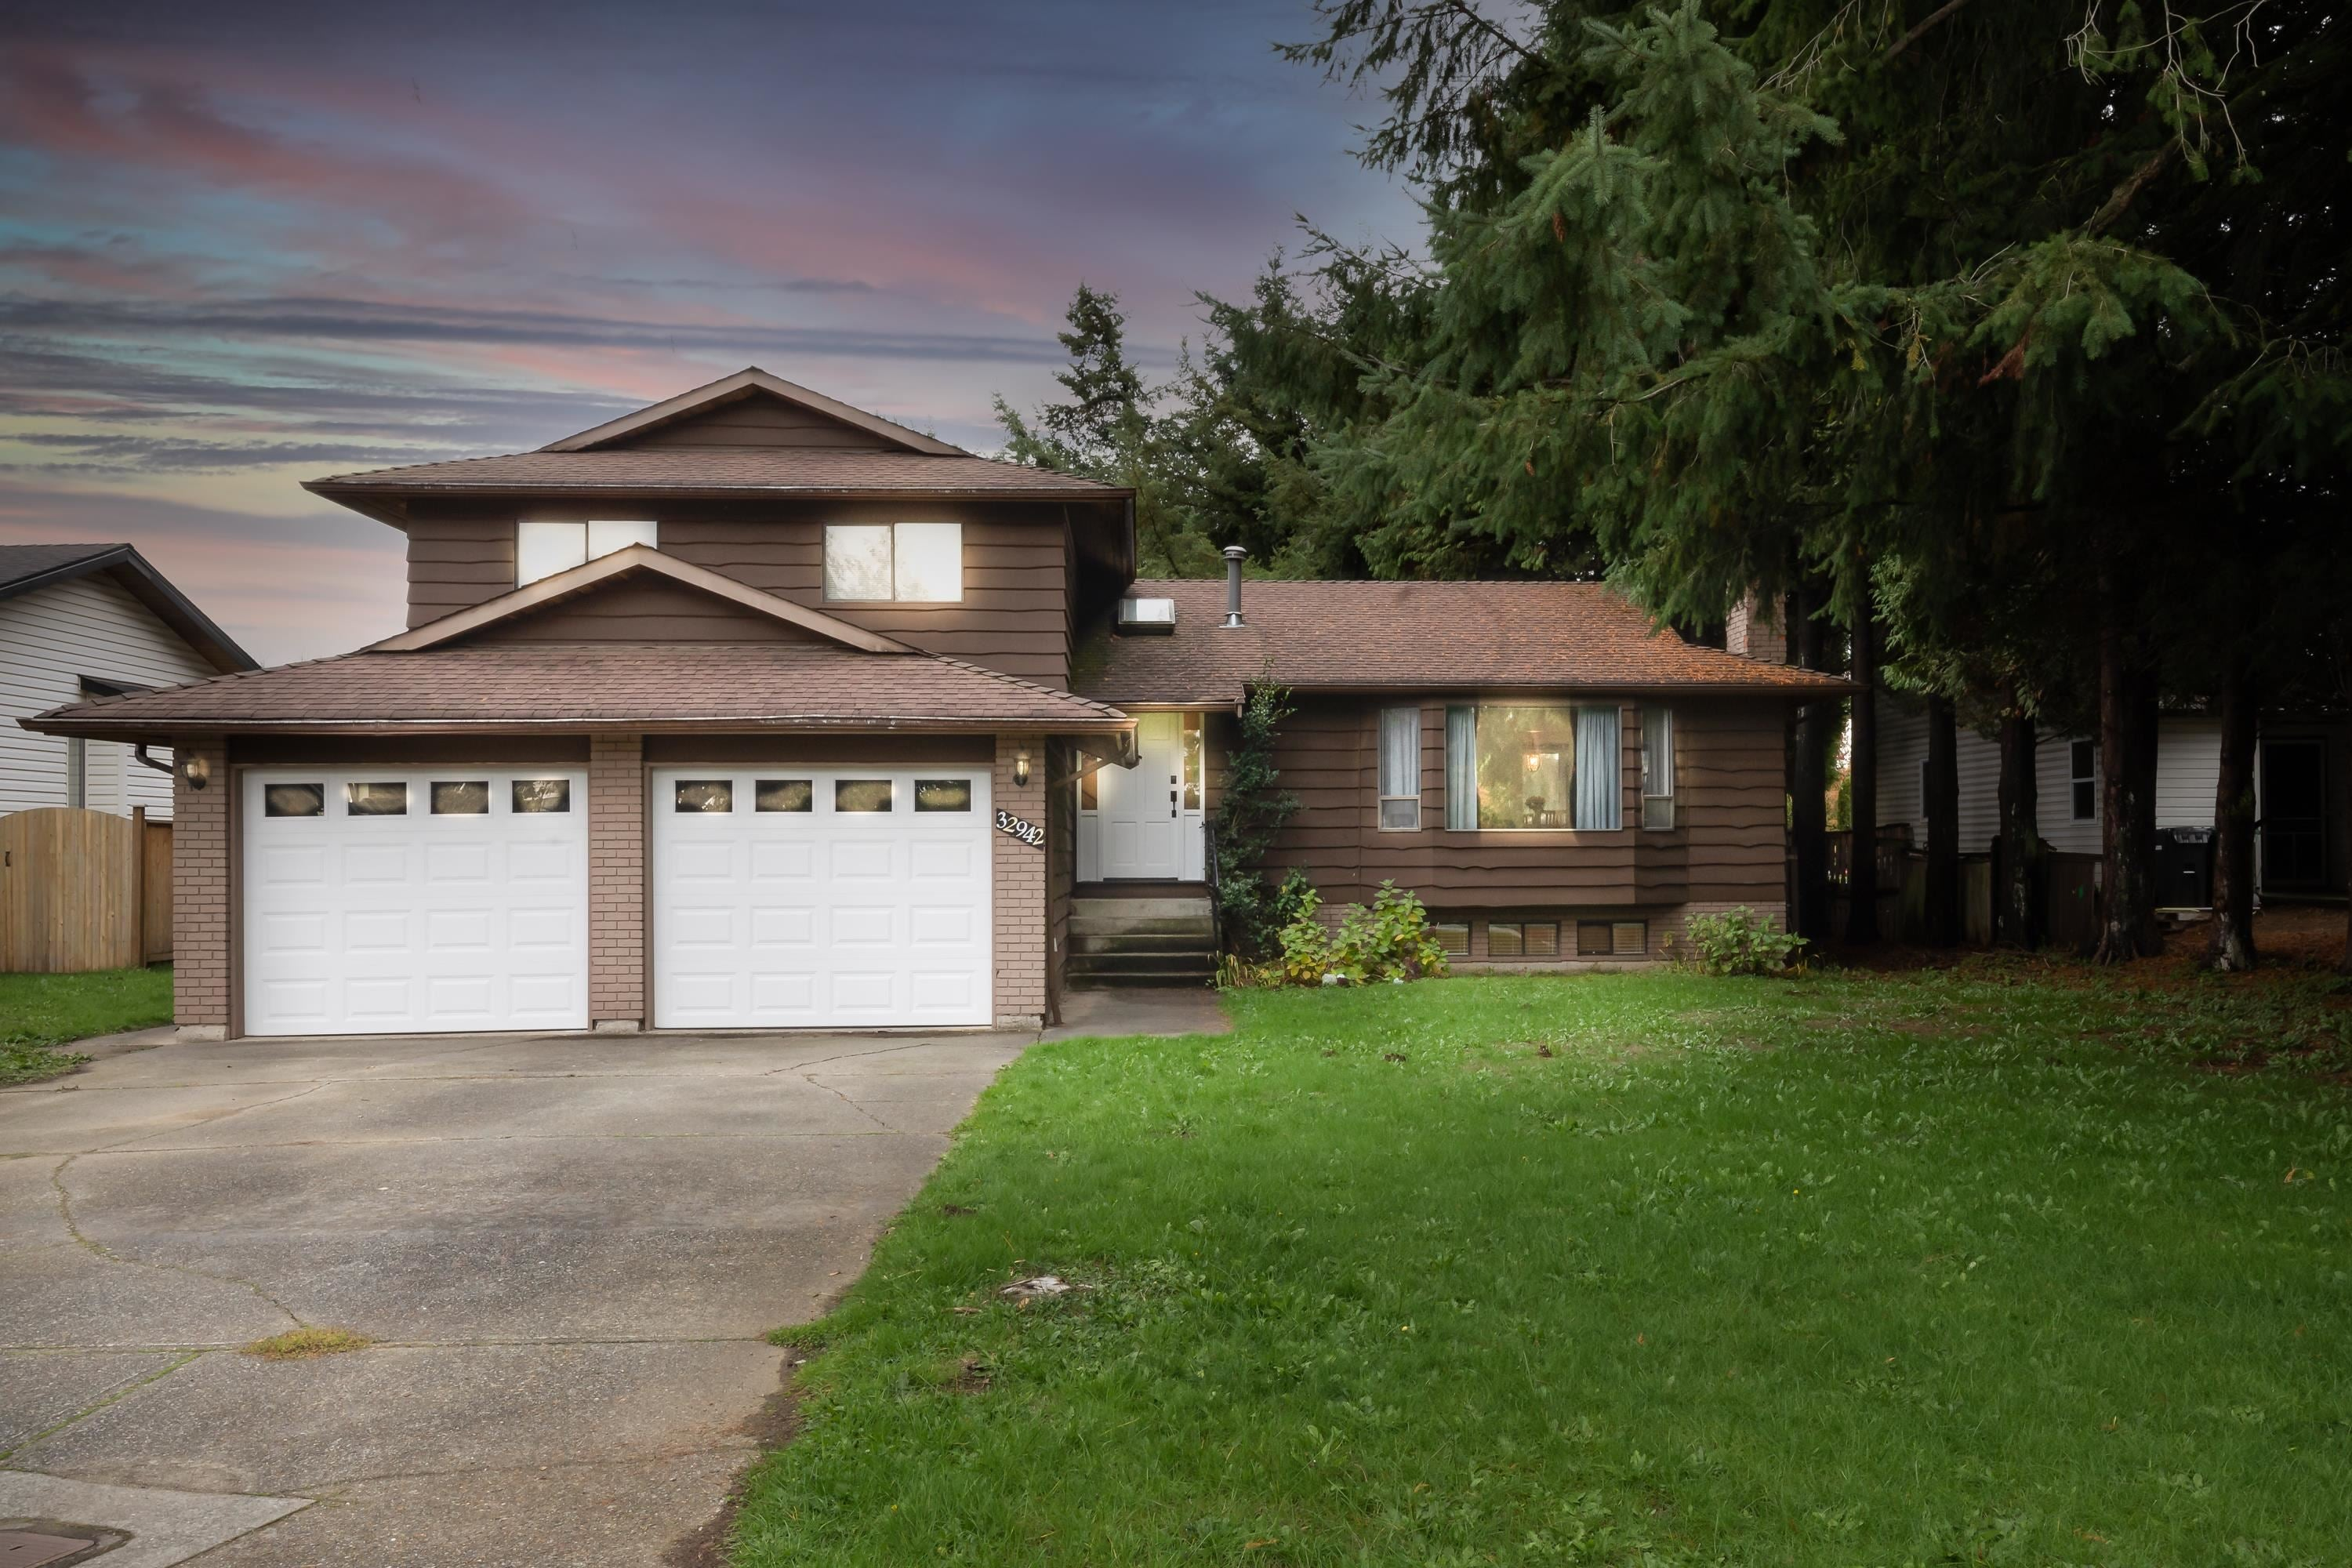 32942 BANFF PLACE - Central Abbotsford House/Single Family for sale, 7 Bedrooms (R2627679) - #1